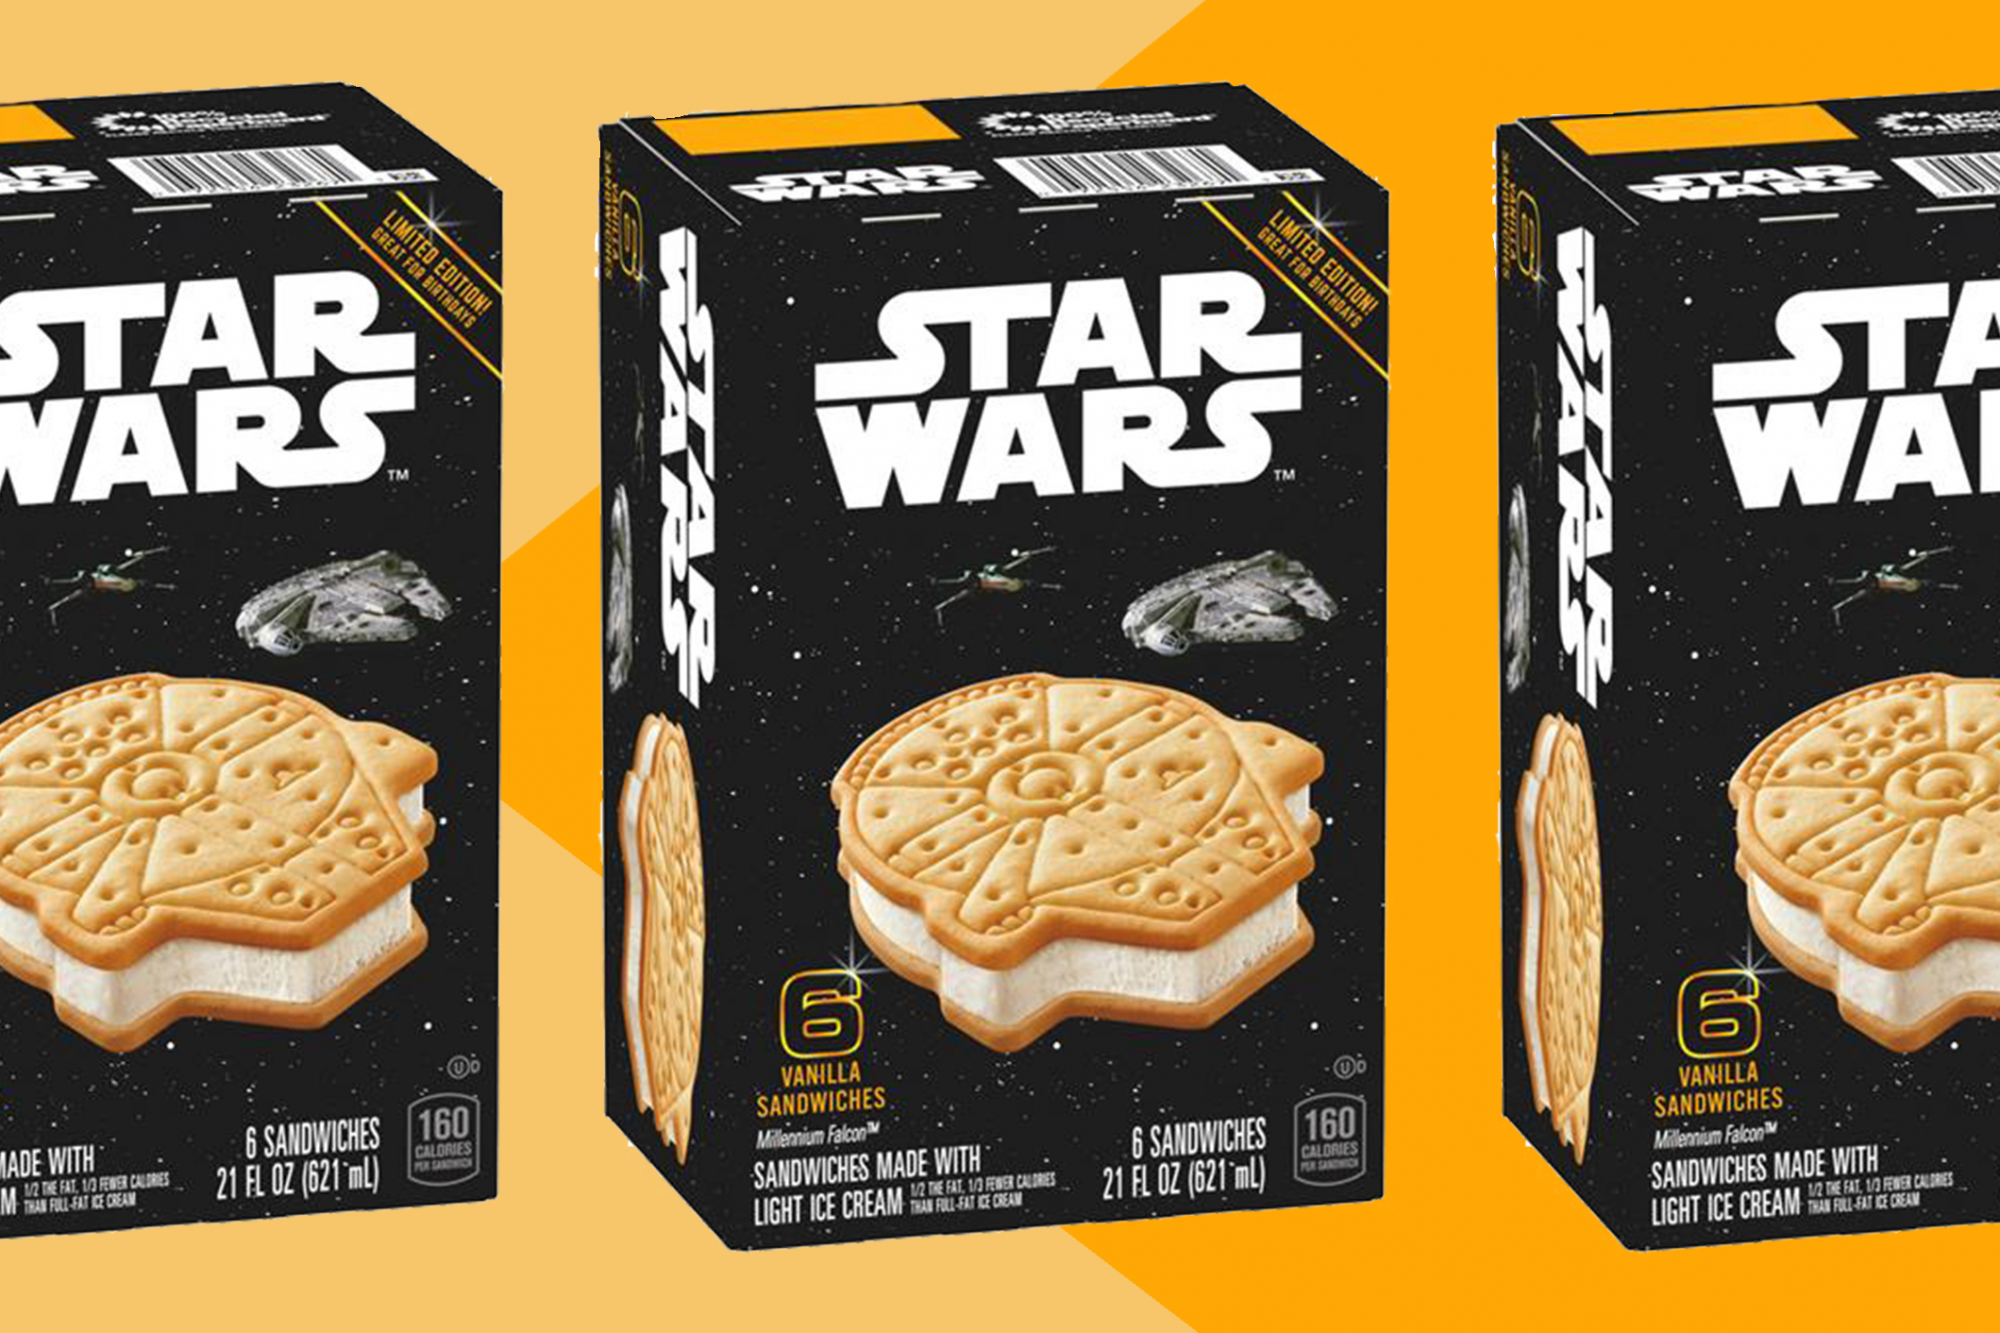 These Millennium Falcon Ice Cream Sandwiches Are Out of This World #icecreamsandwich